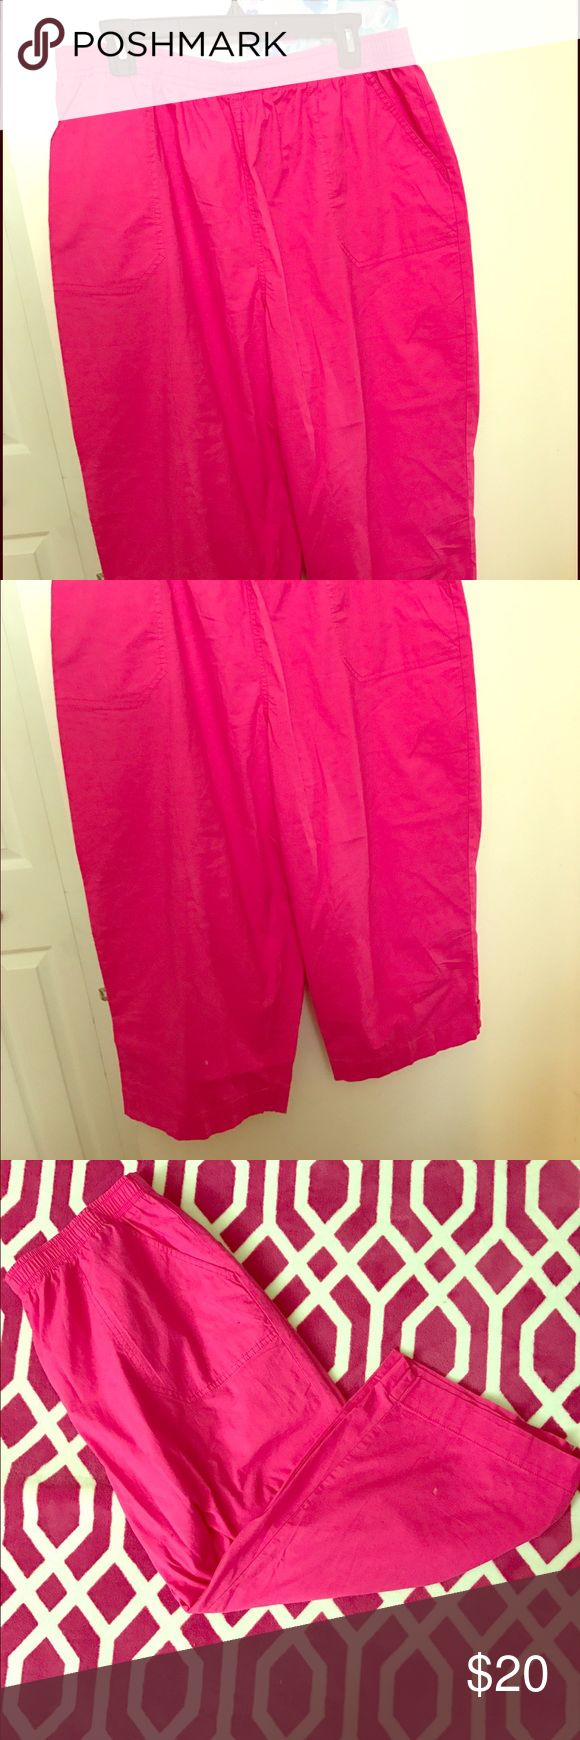 Kim rogers hot pink pants Super comfy, 100% cotton, brand new with tags, negotiable price. Kim Rogers Pants Capris